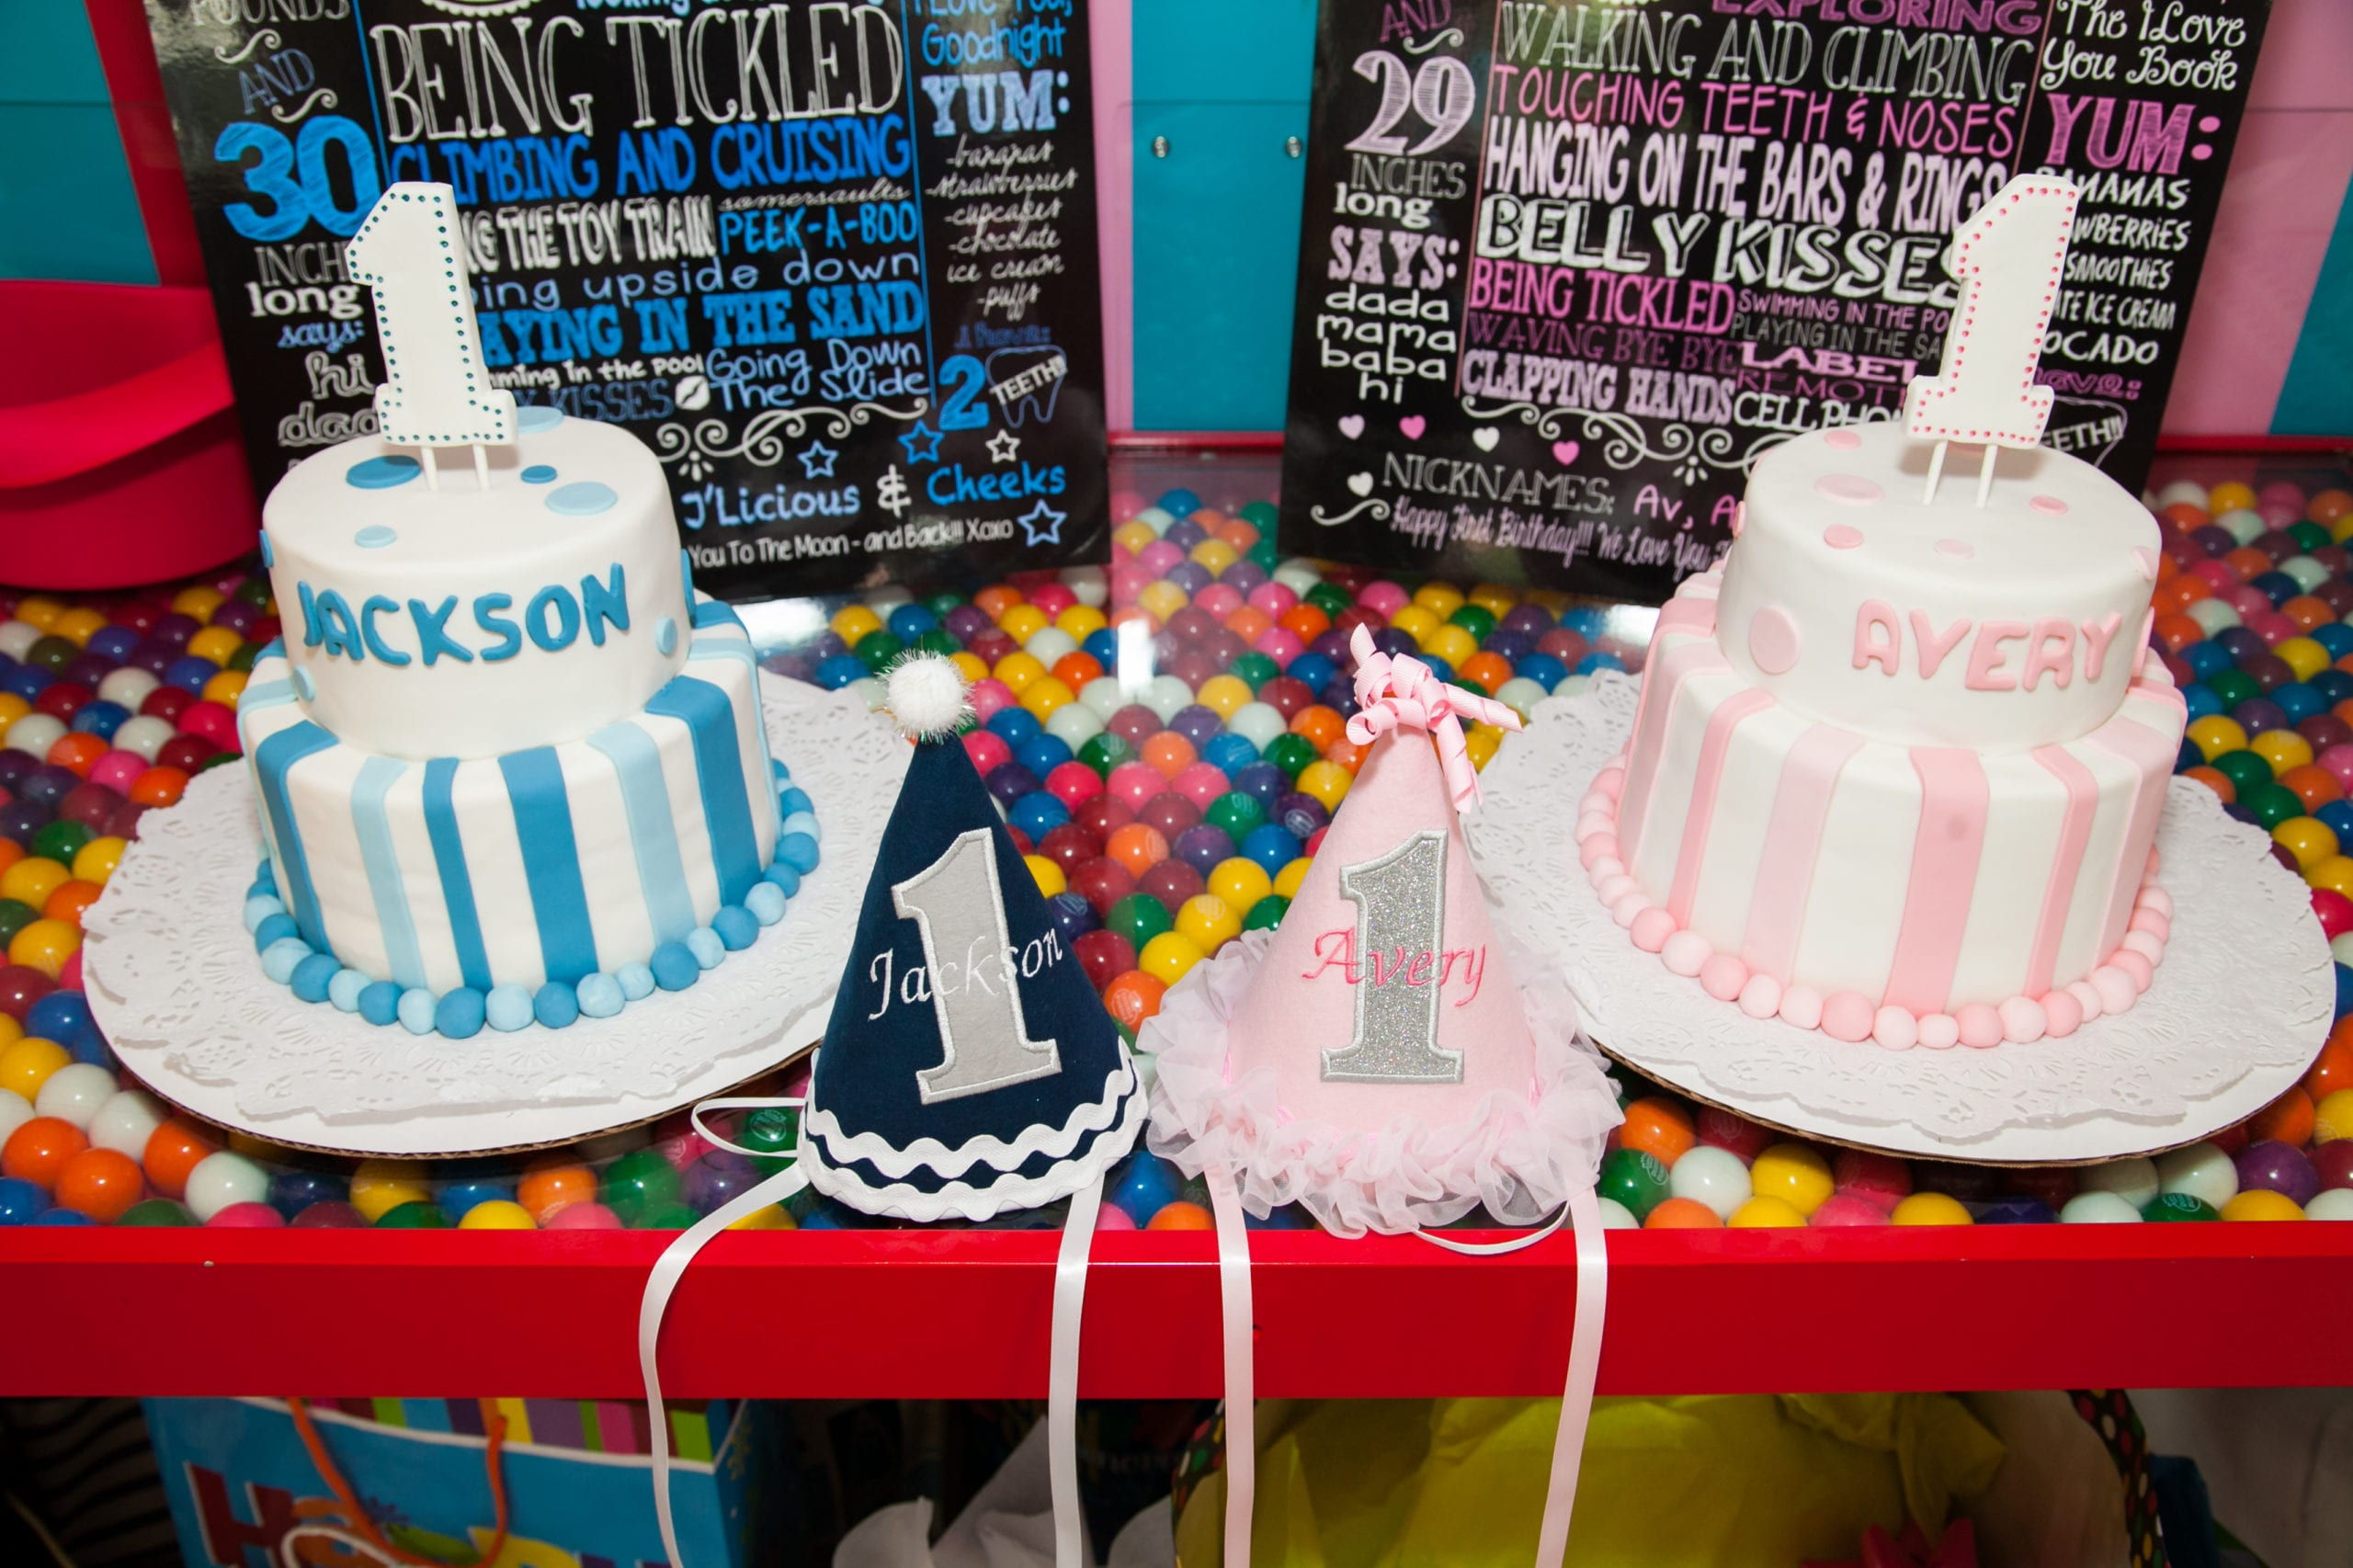 Jackson and Avery's 1st Birthday – Dylan's Candy Bar